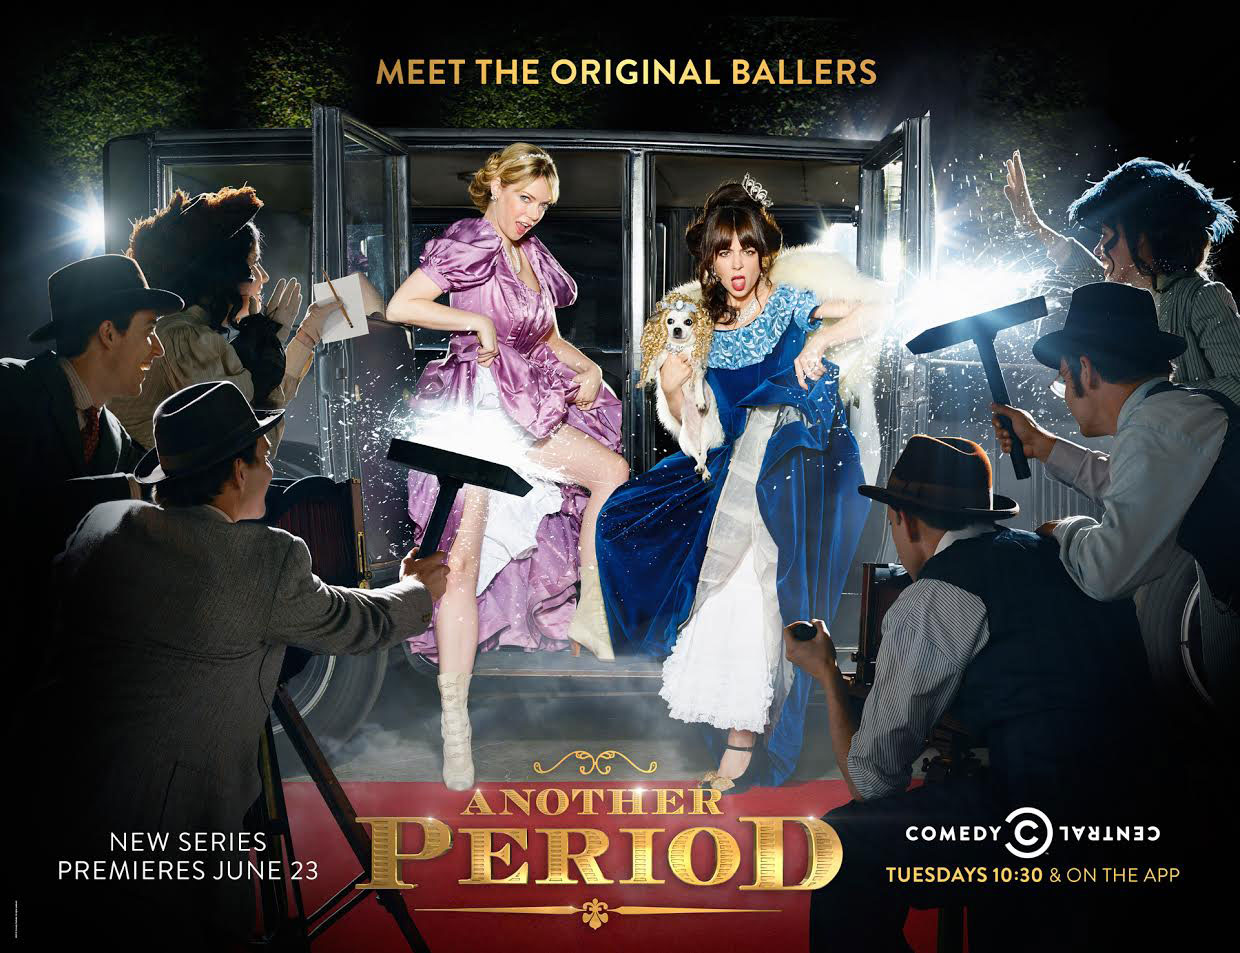 AnotherPeriod